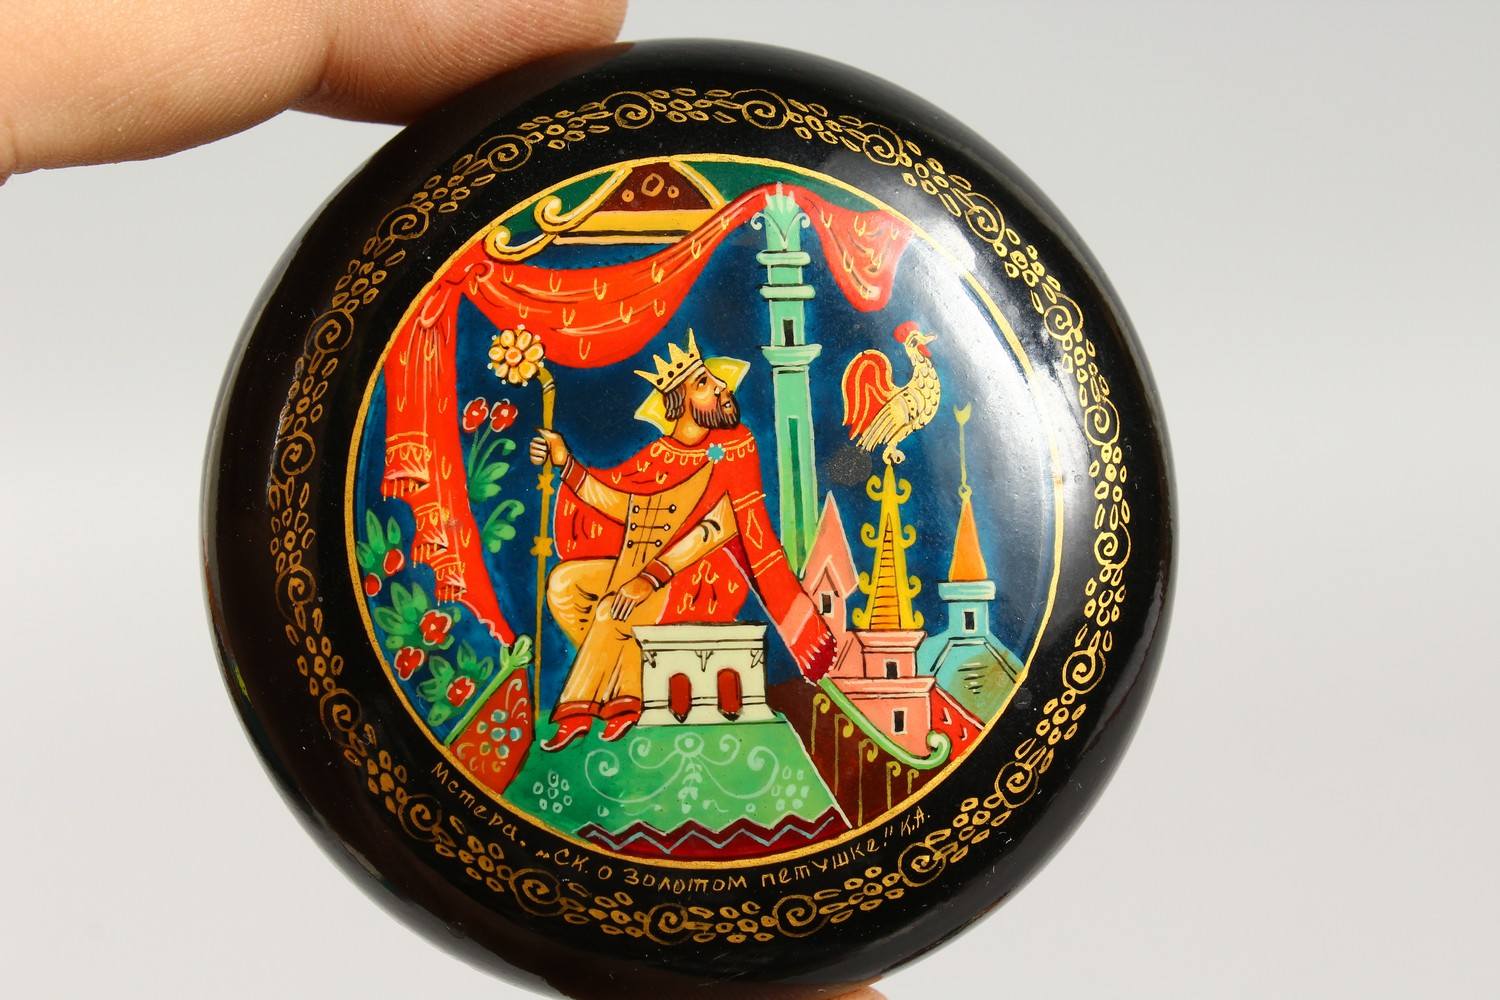 TWO SMALL RUSSIAN CIRCULAR BLACK PAPIER MACHE BOXES AND COVERS. 2.5ins diameter. - Image 3 of 12